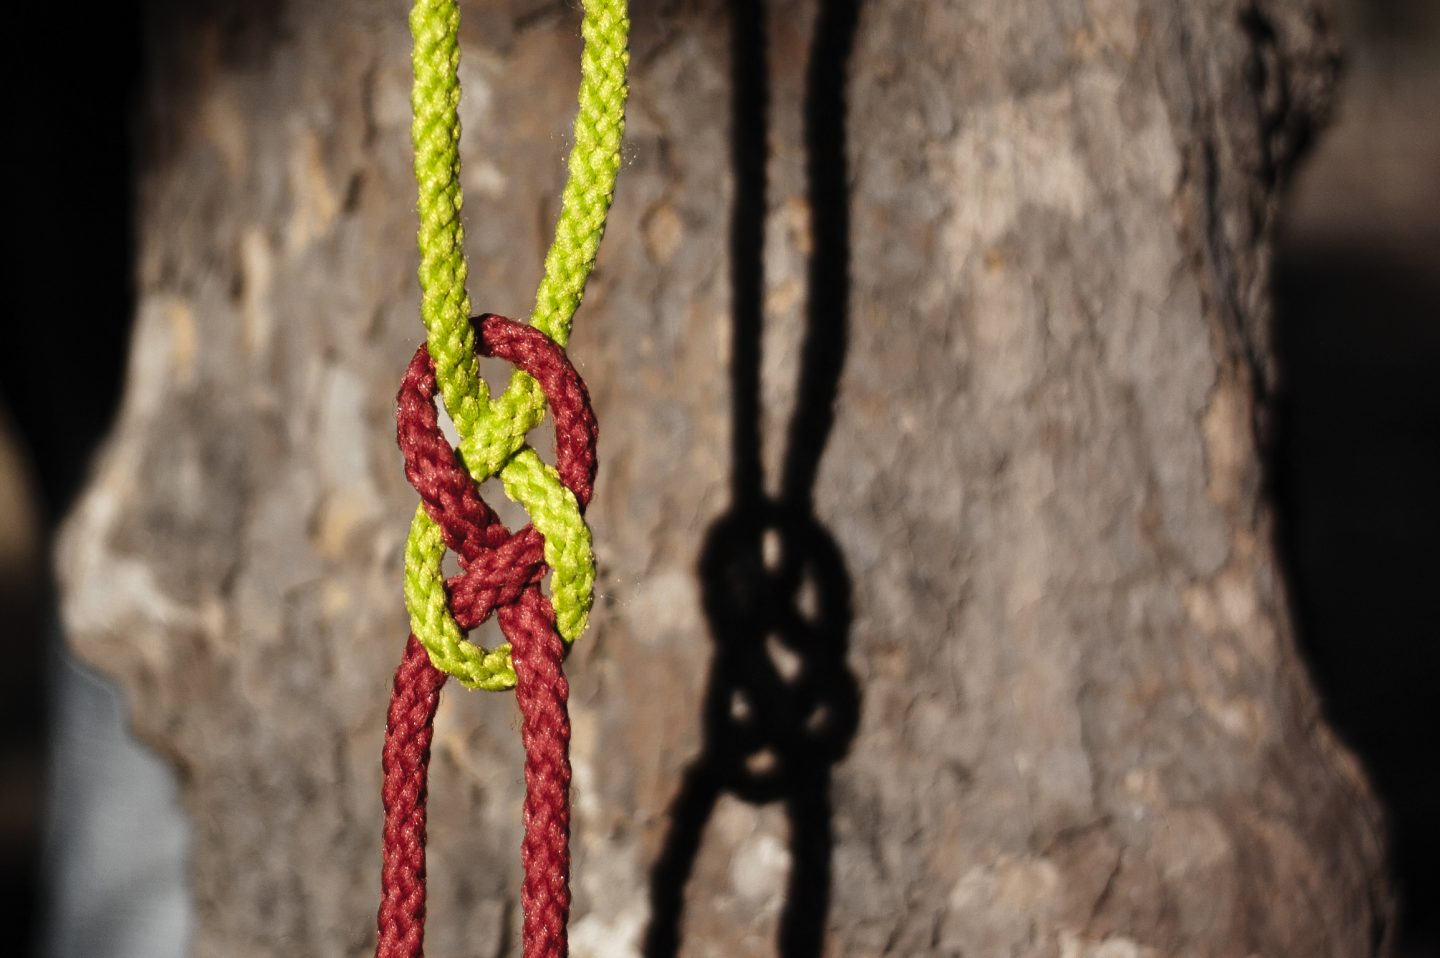 Yellow and red rope in a loose know, a shadow sits to the right atop a rock face